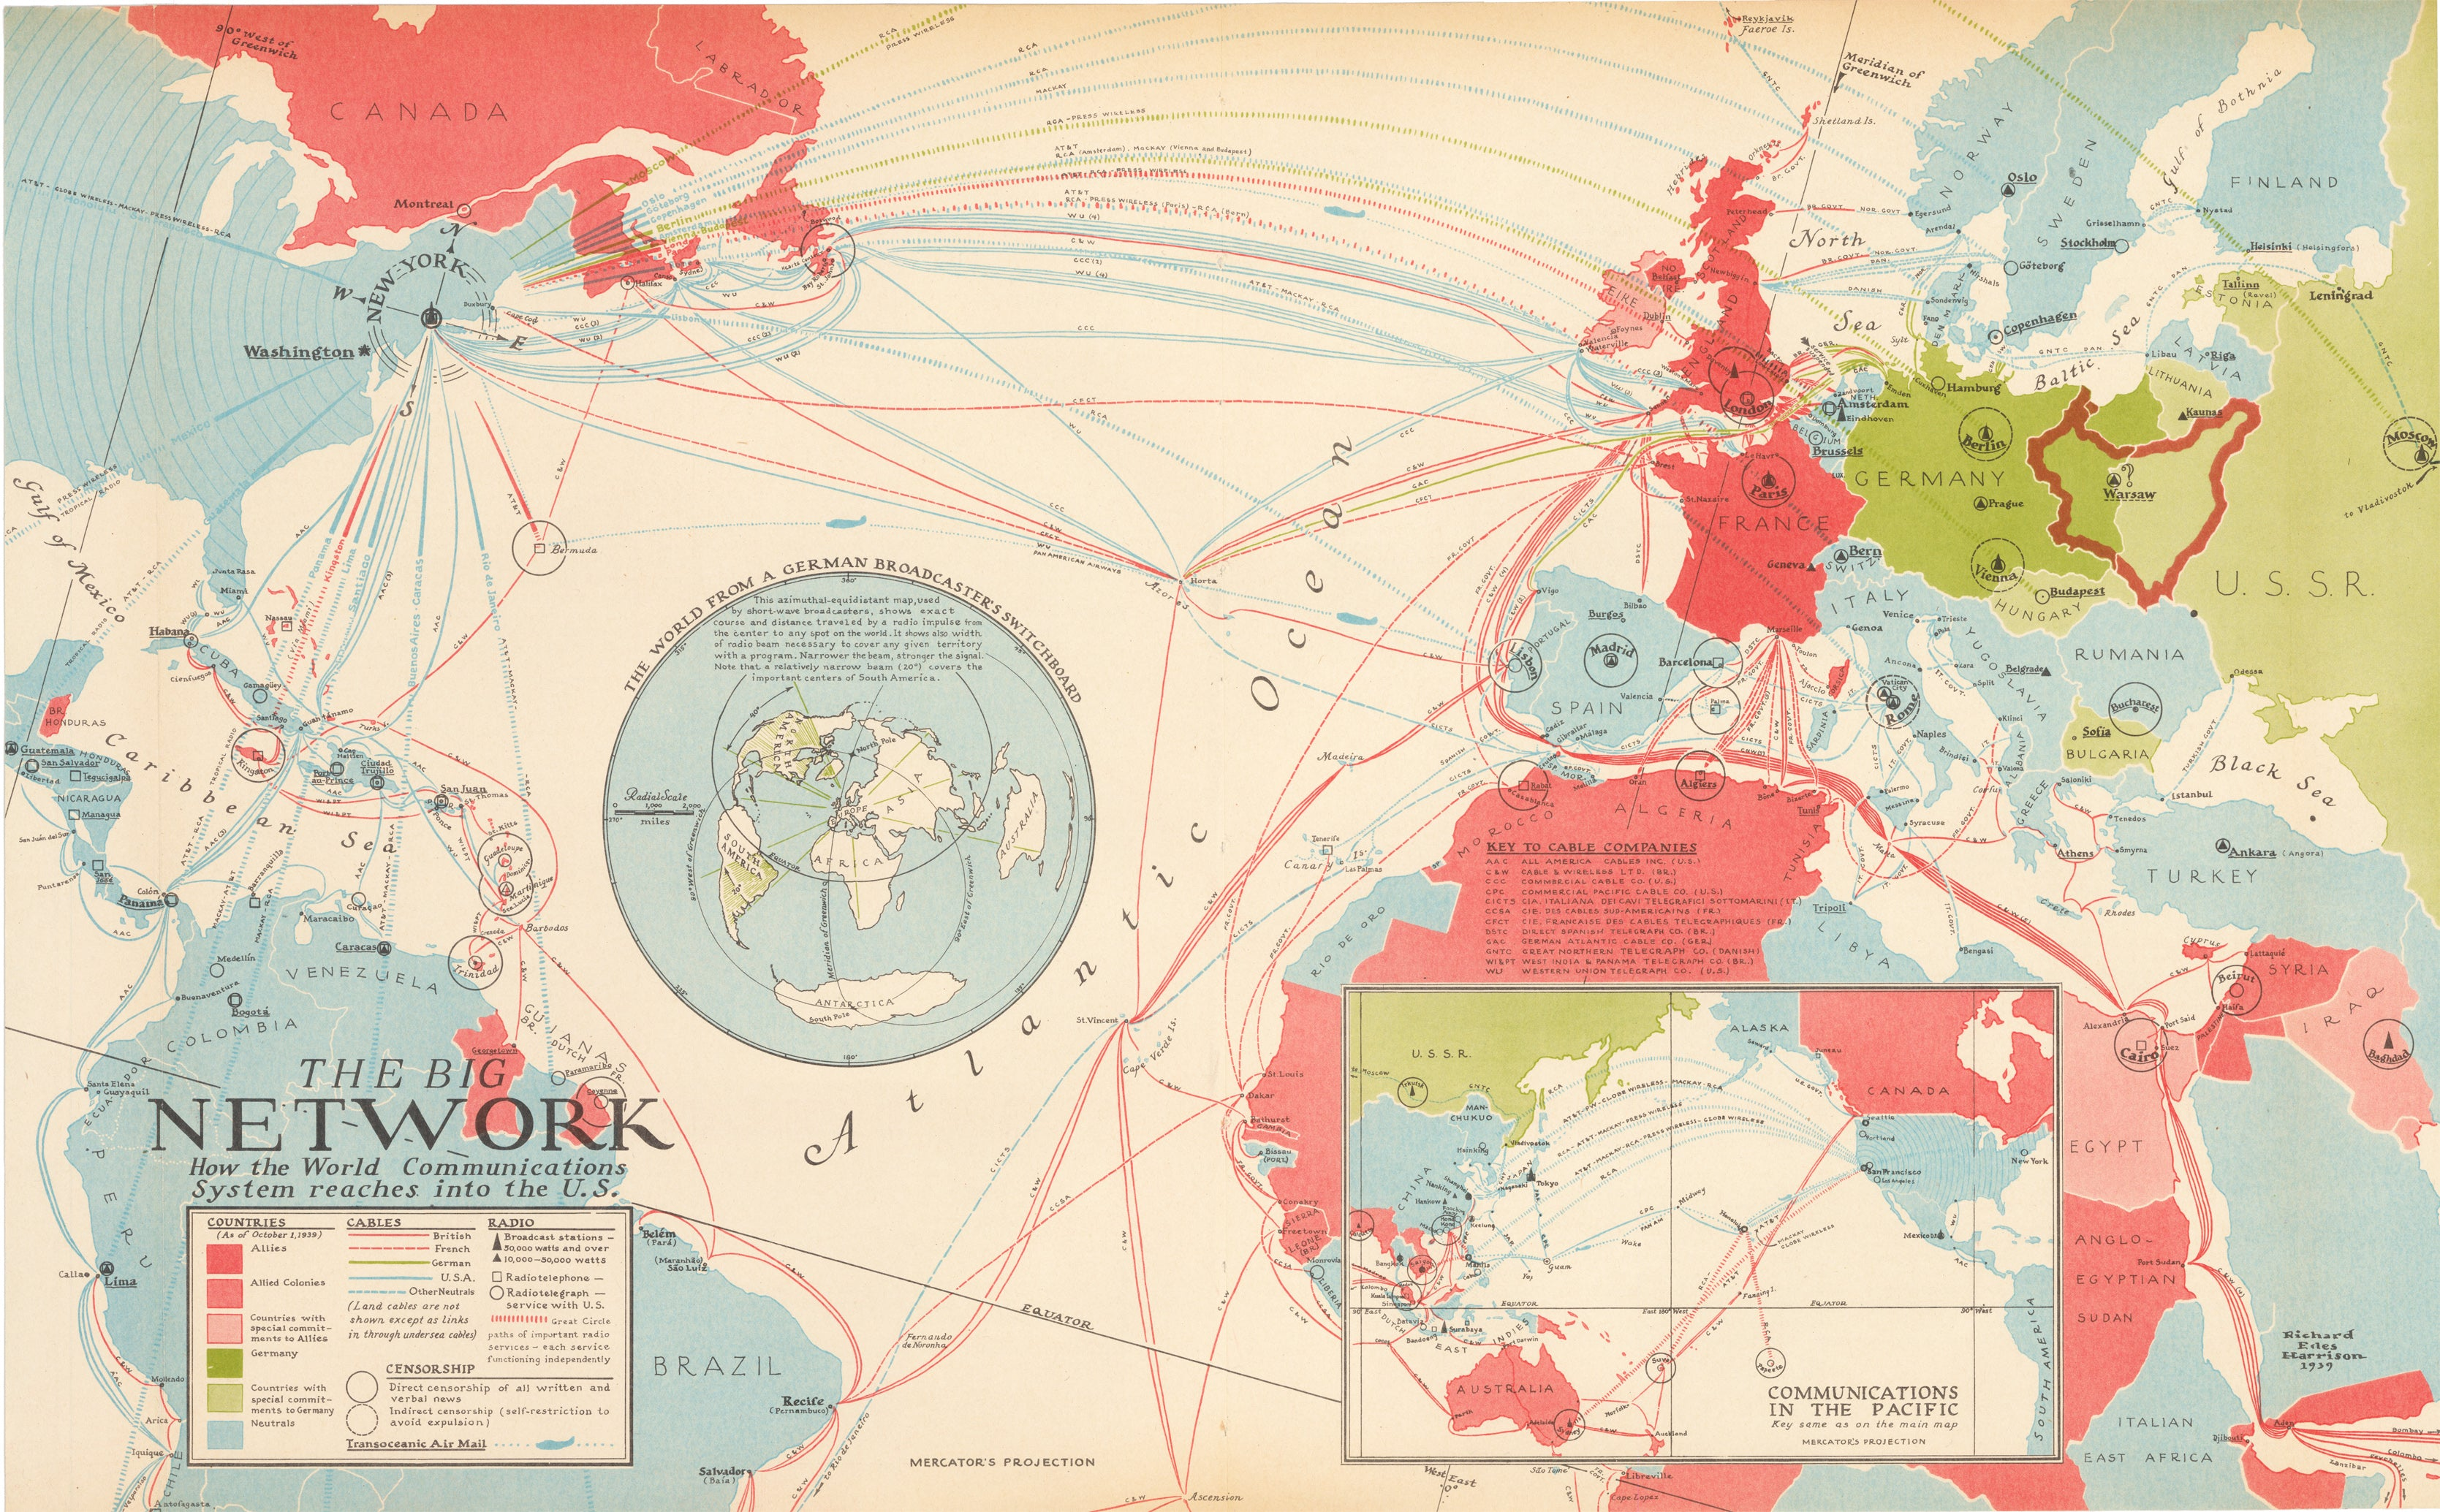 The Big Network; How the World Communication System Reaches the U.S. by Harrison, 1939